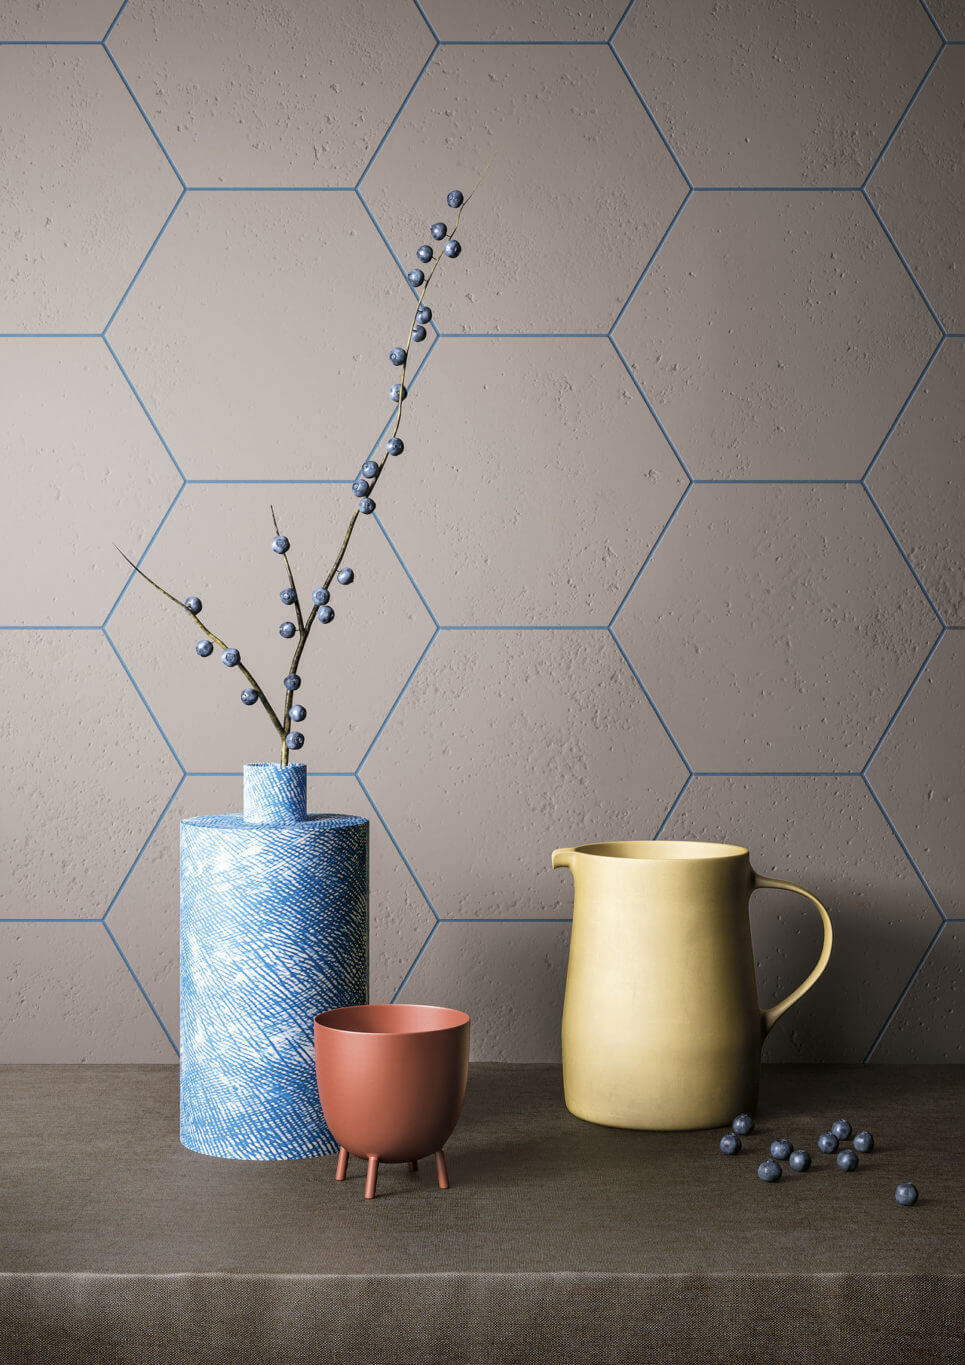 Hexagon tile wall with blue grout